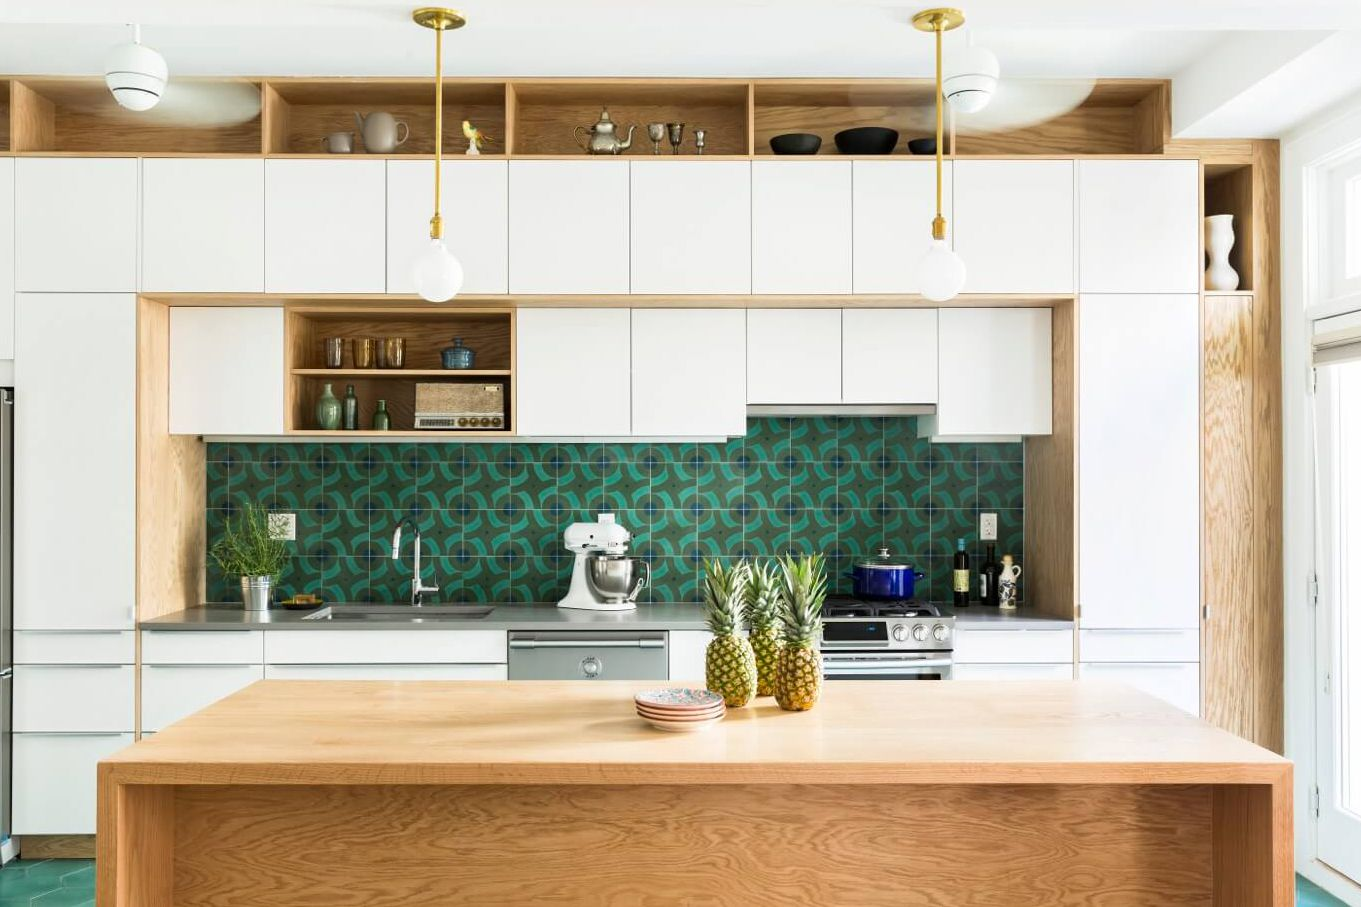 Colorful and Modern Kitchen Backsplash Ideas